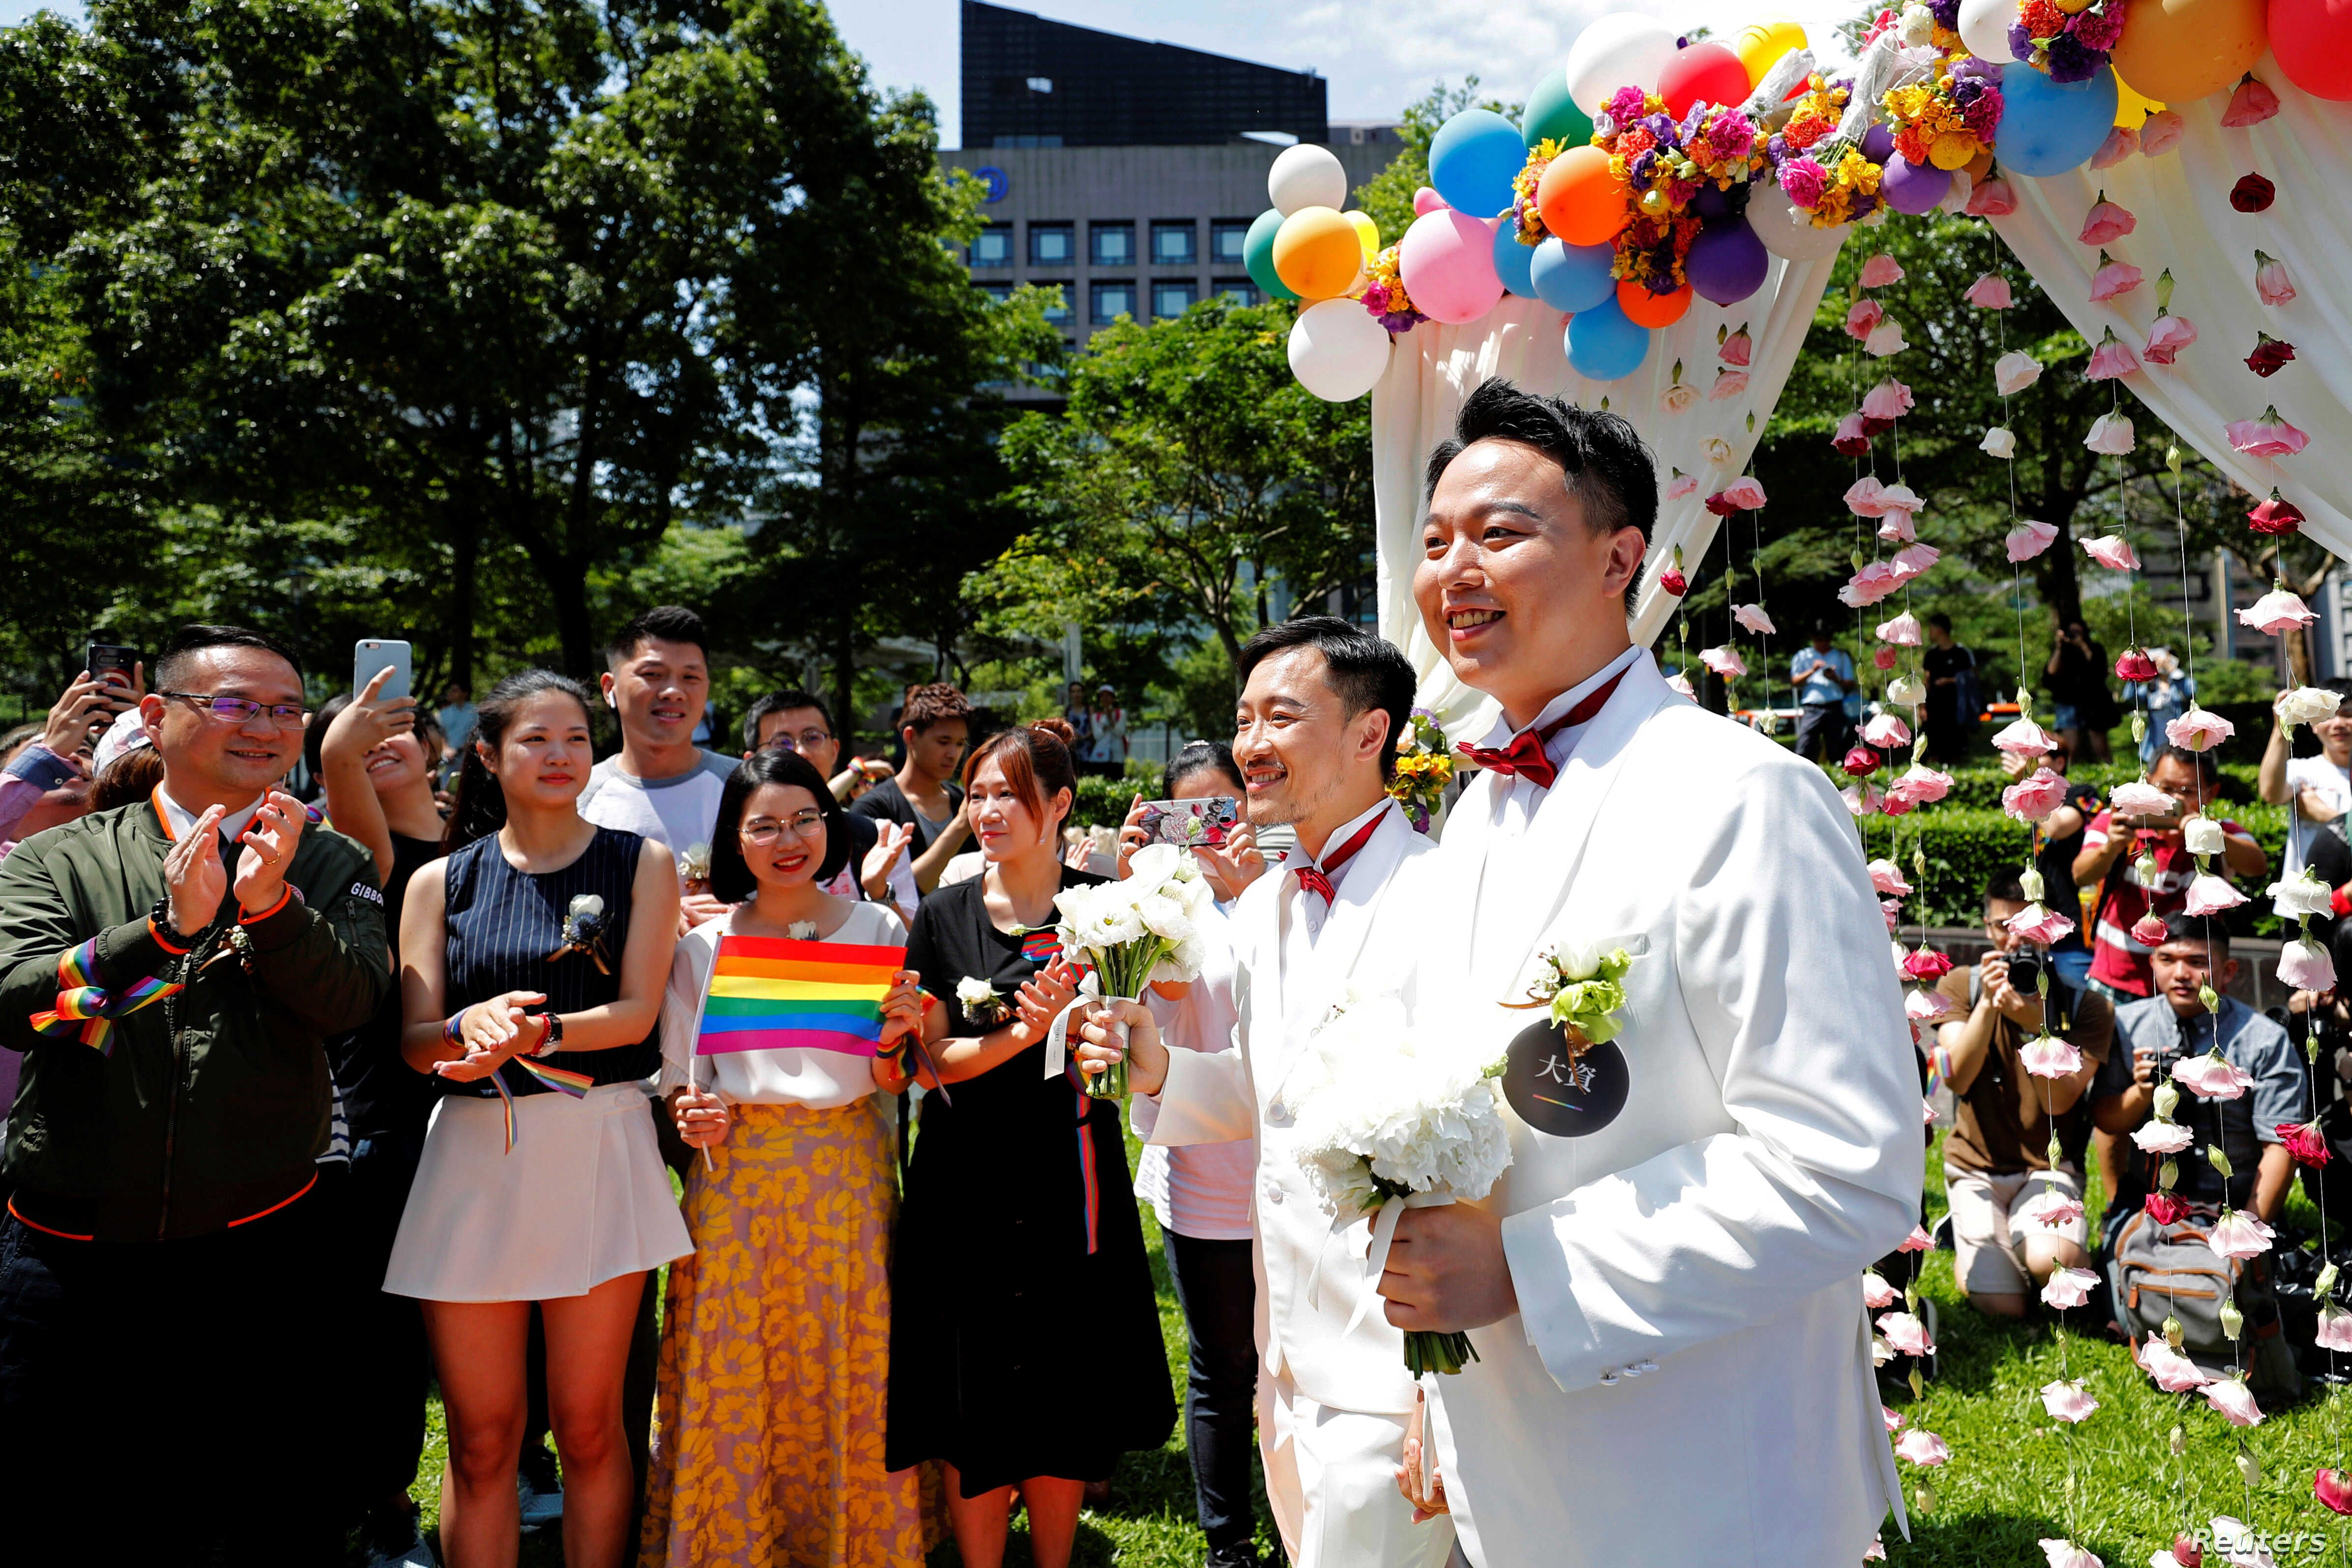 Gay newlyweds walk on a giant rainbow flag at a same-sex marriage party after registering their marriage in Taipei, Taiwan, May 24, 2019.